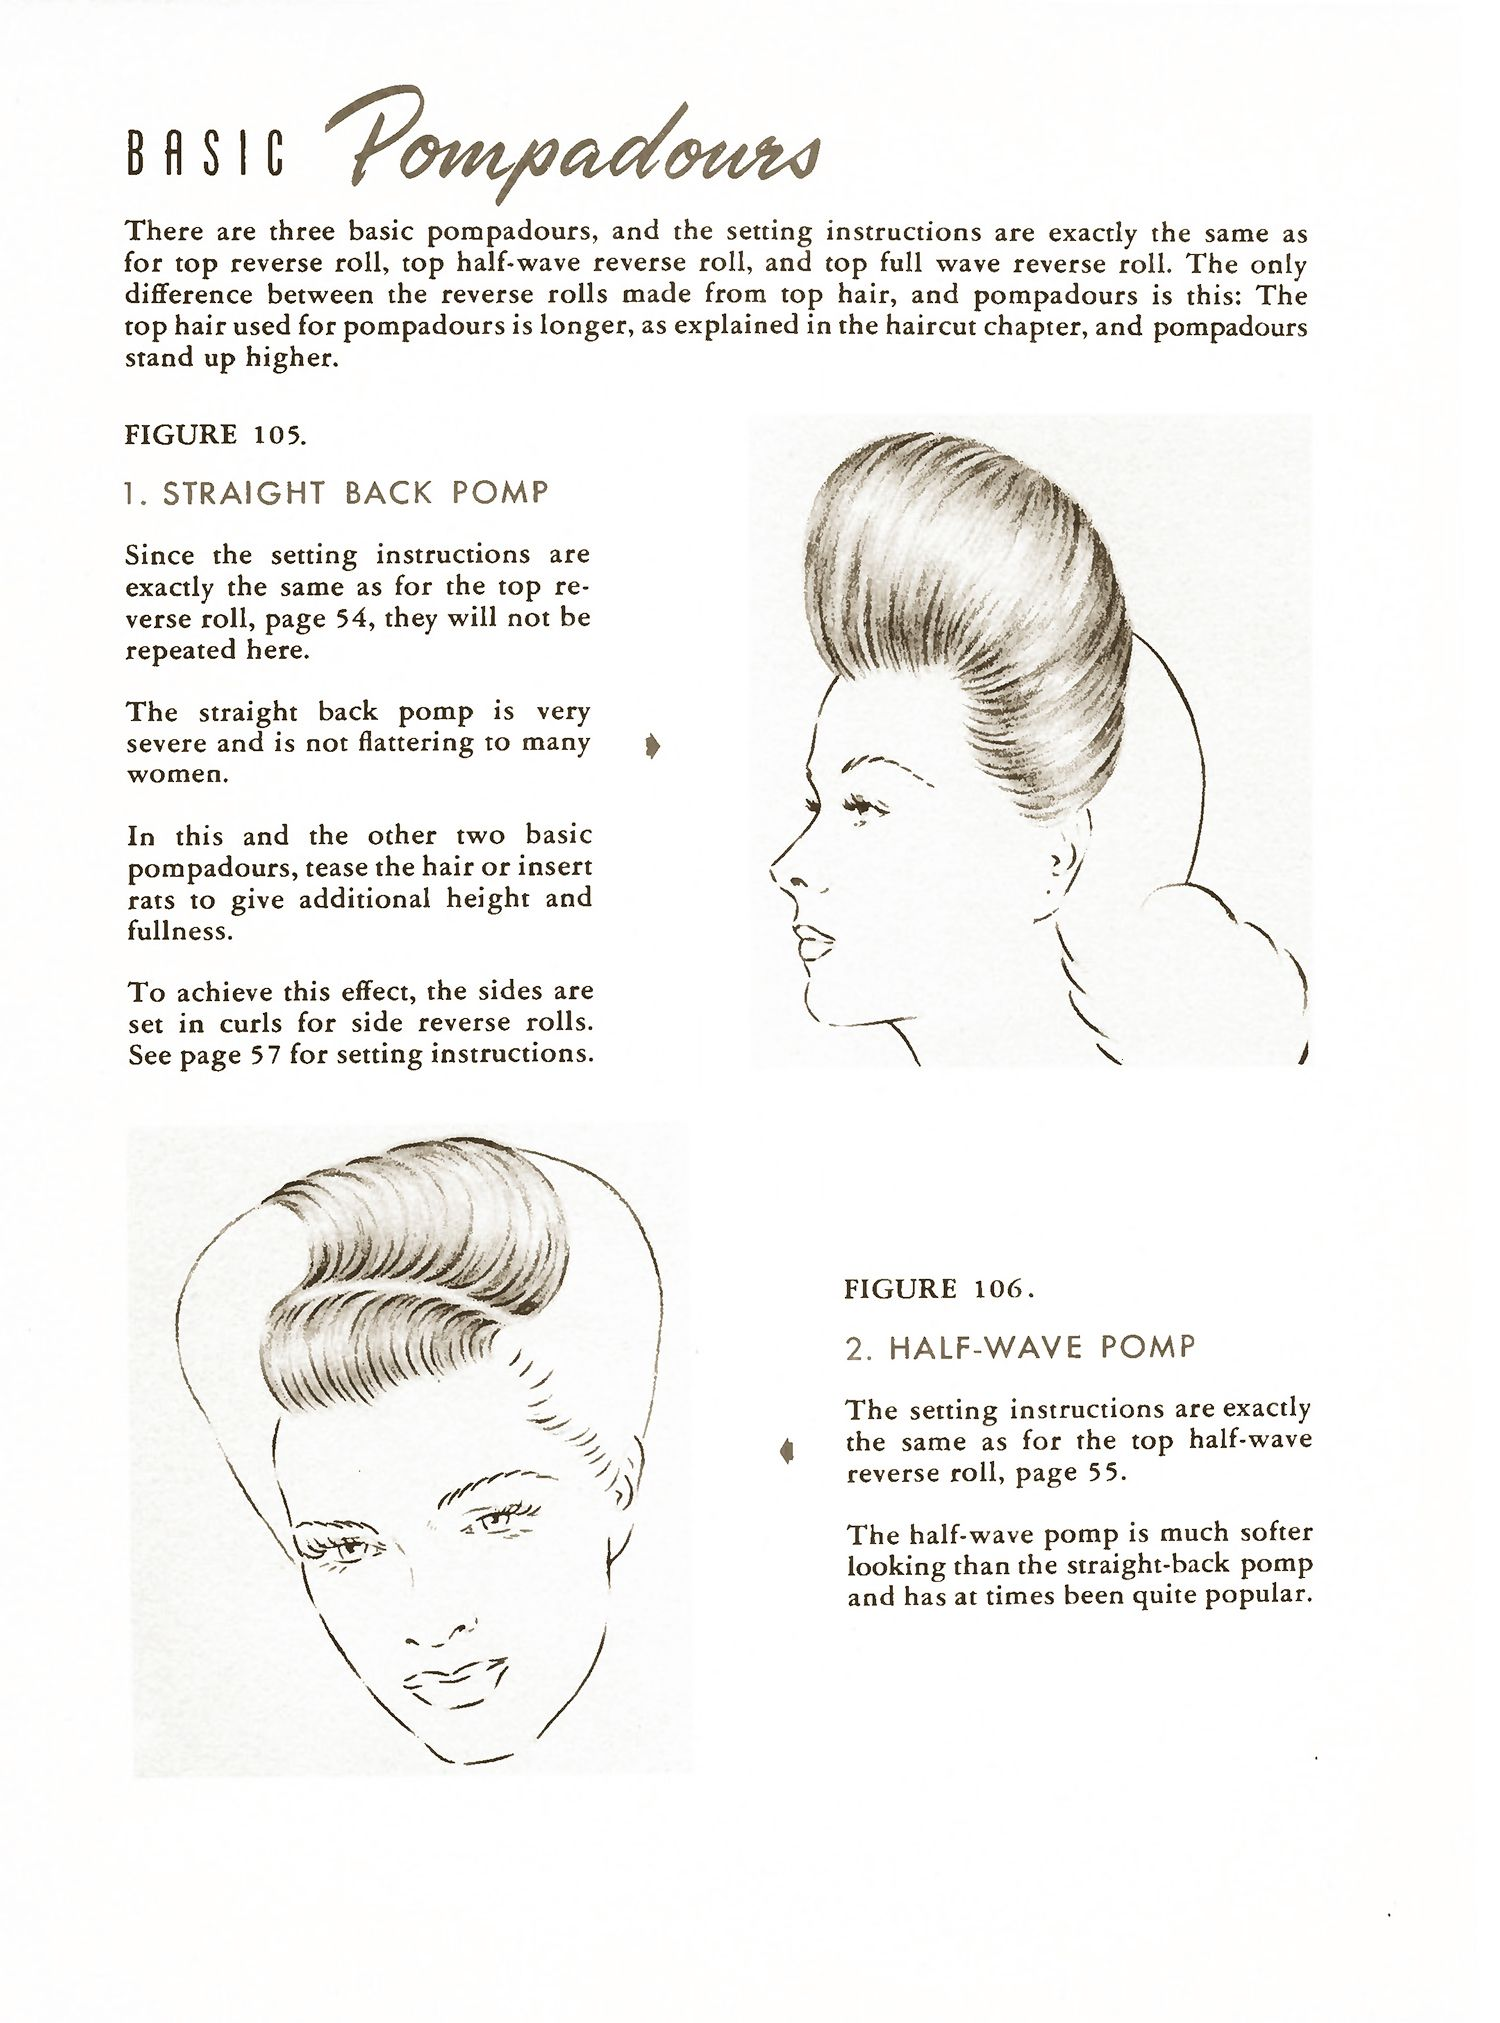 1940s pompadour hairstyle howto guide from 1944 | a new look